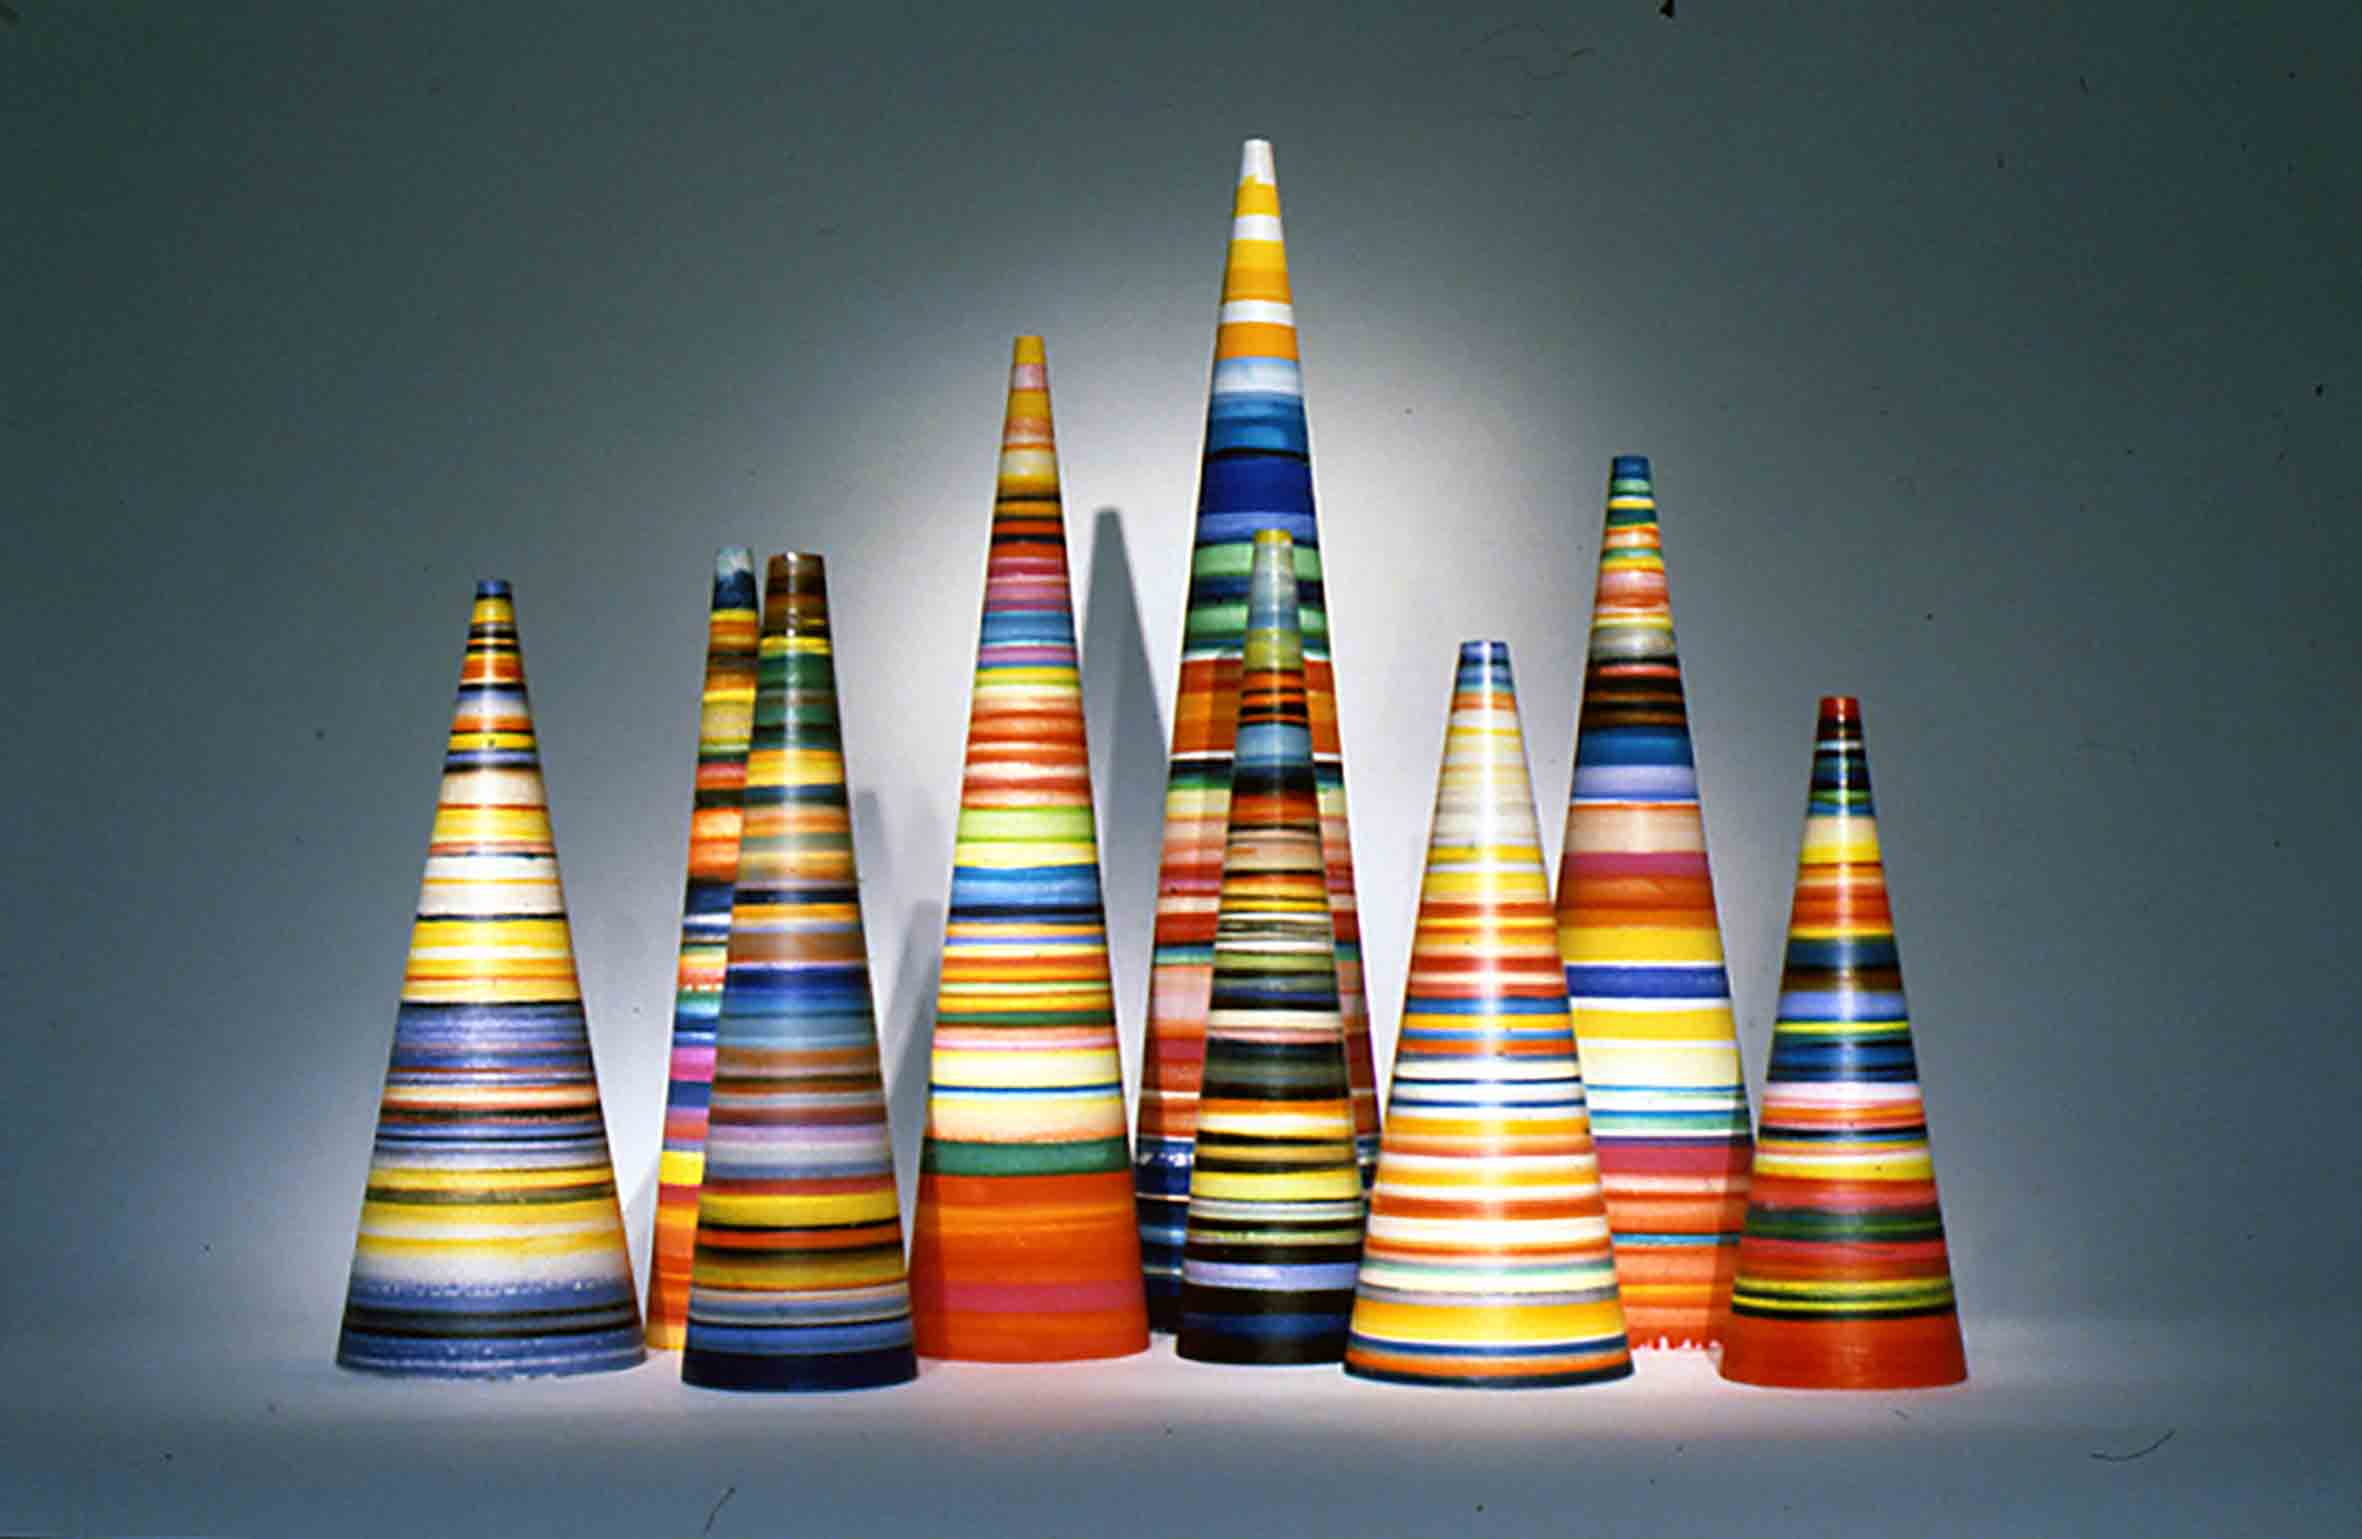 Liliane Lijn, Striped Koans, 1995-7, © the artist